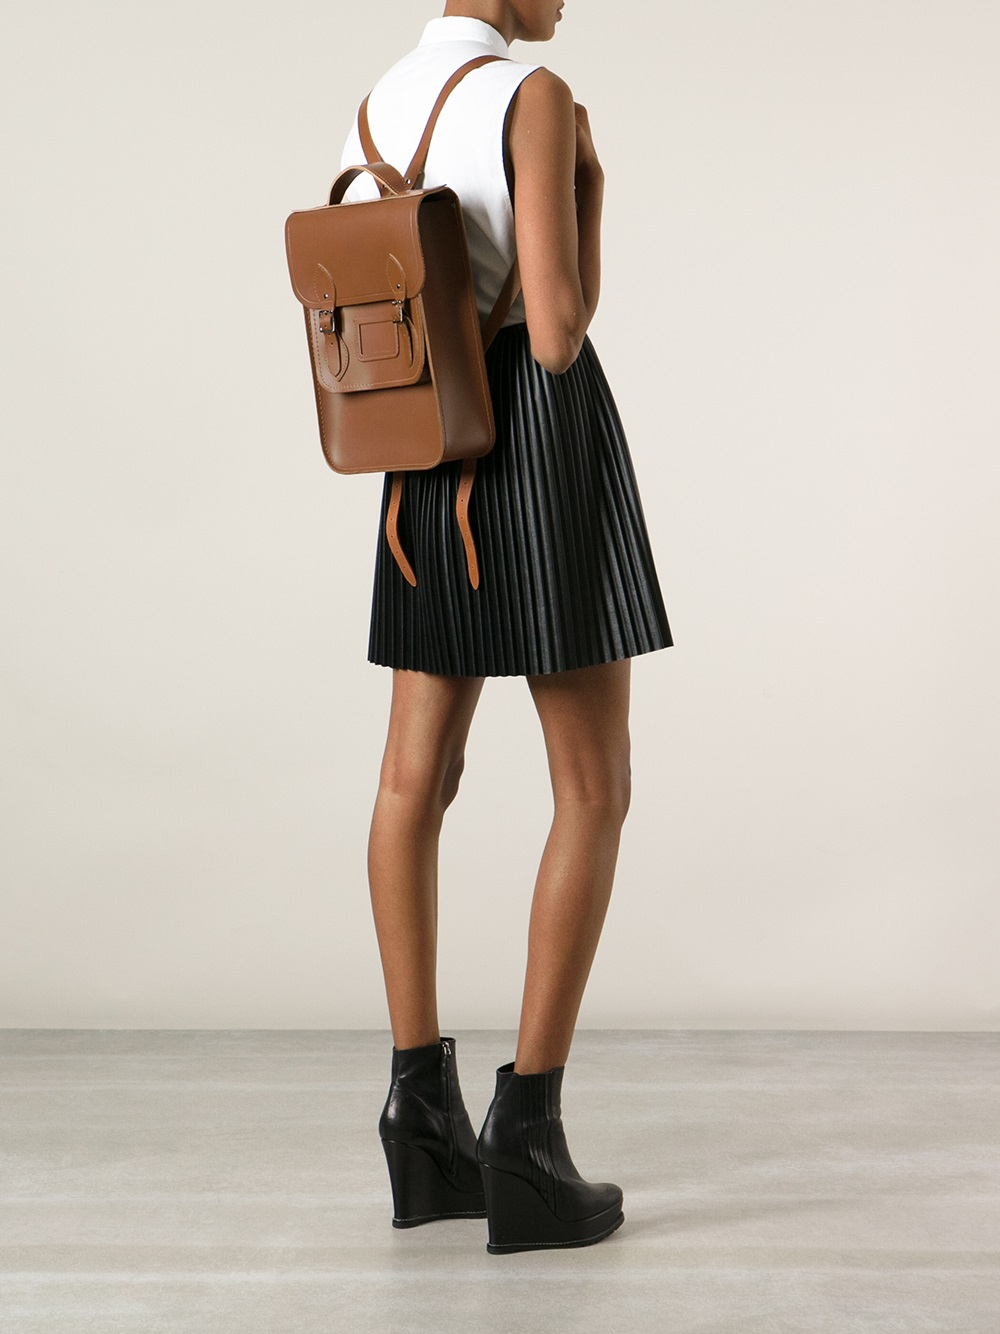 493a474f6 Cambridge Satchel Company Raw Cut Backpack in Brown - Lyst